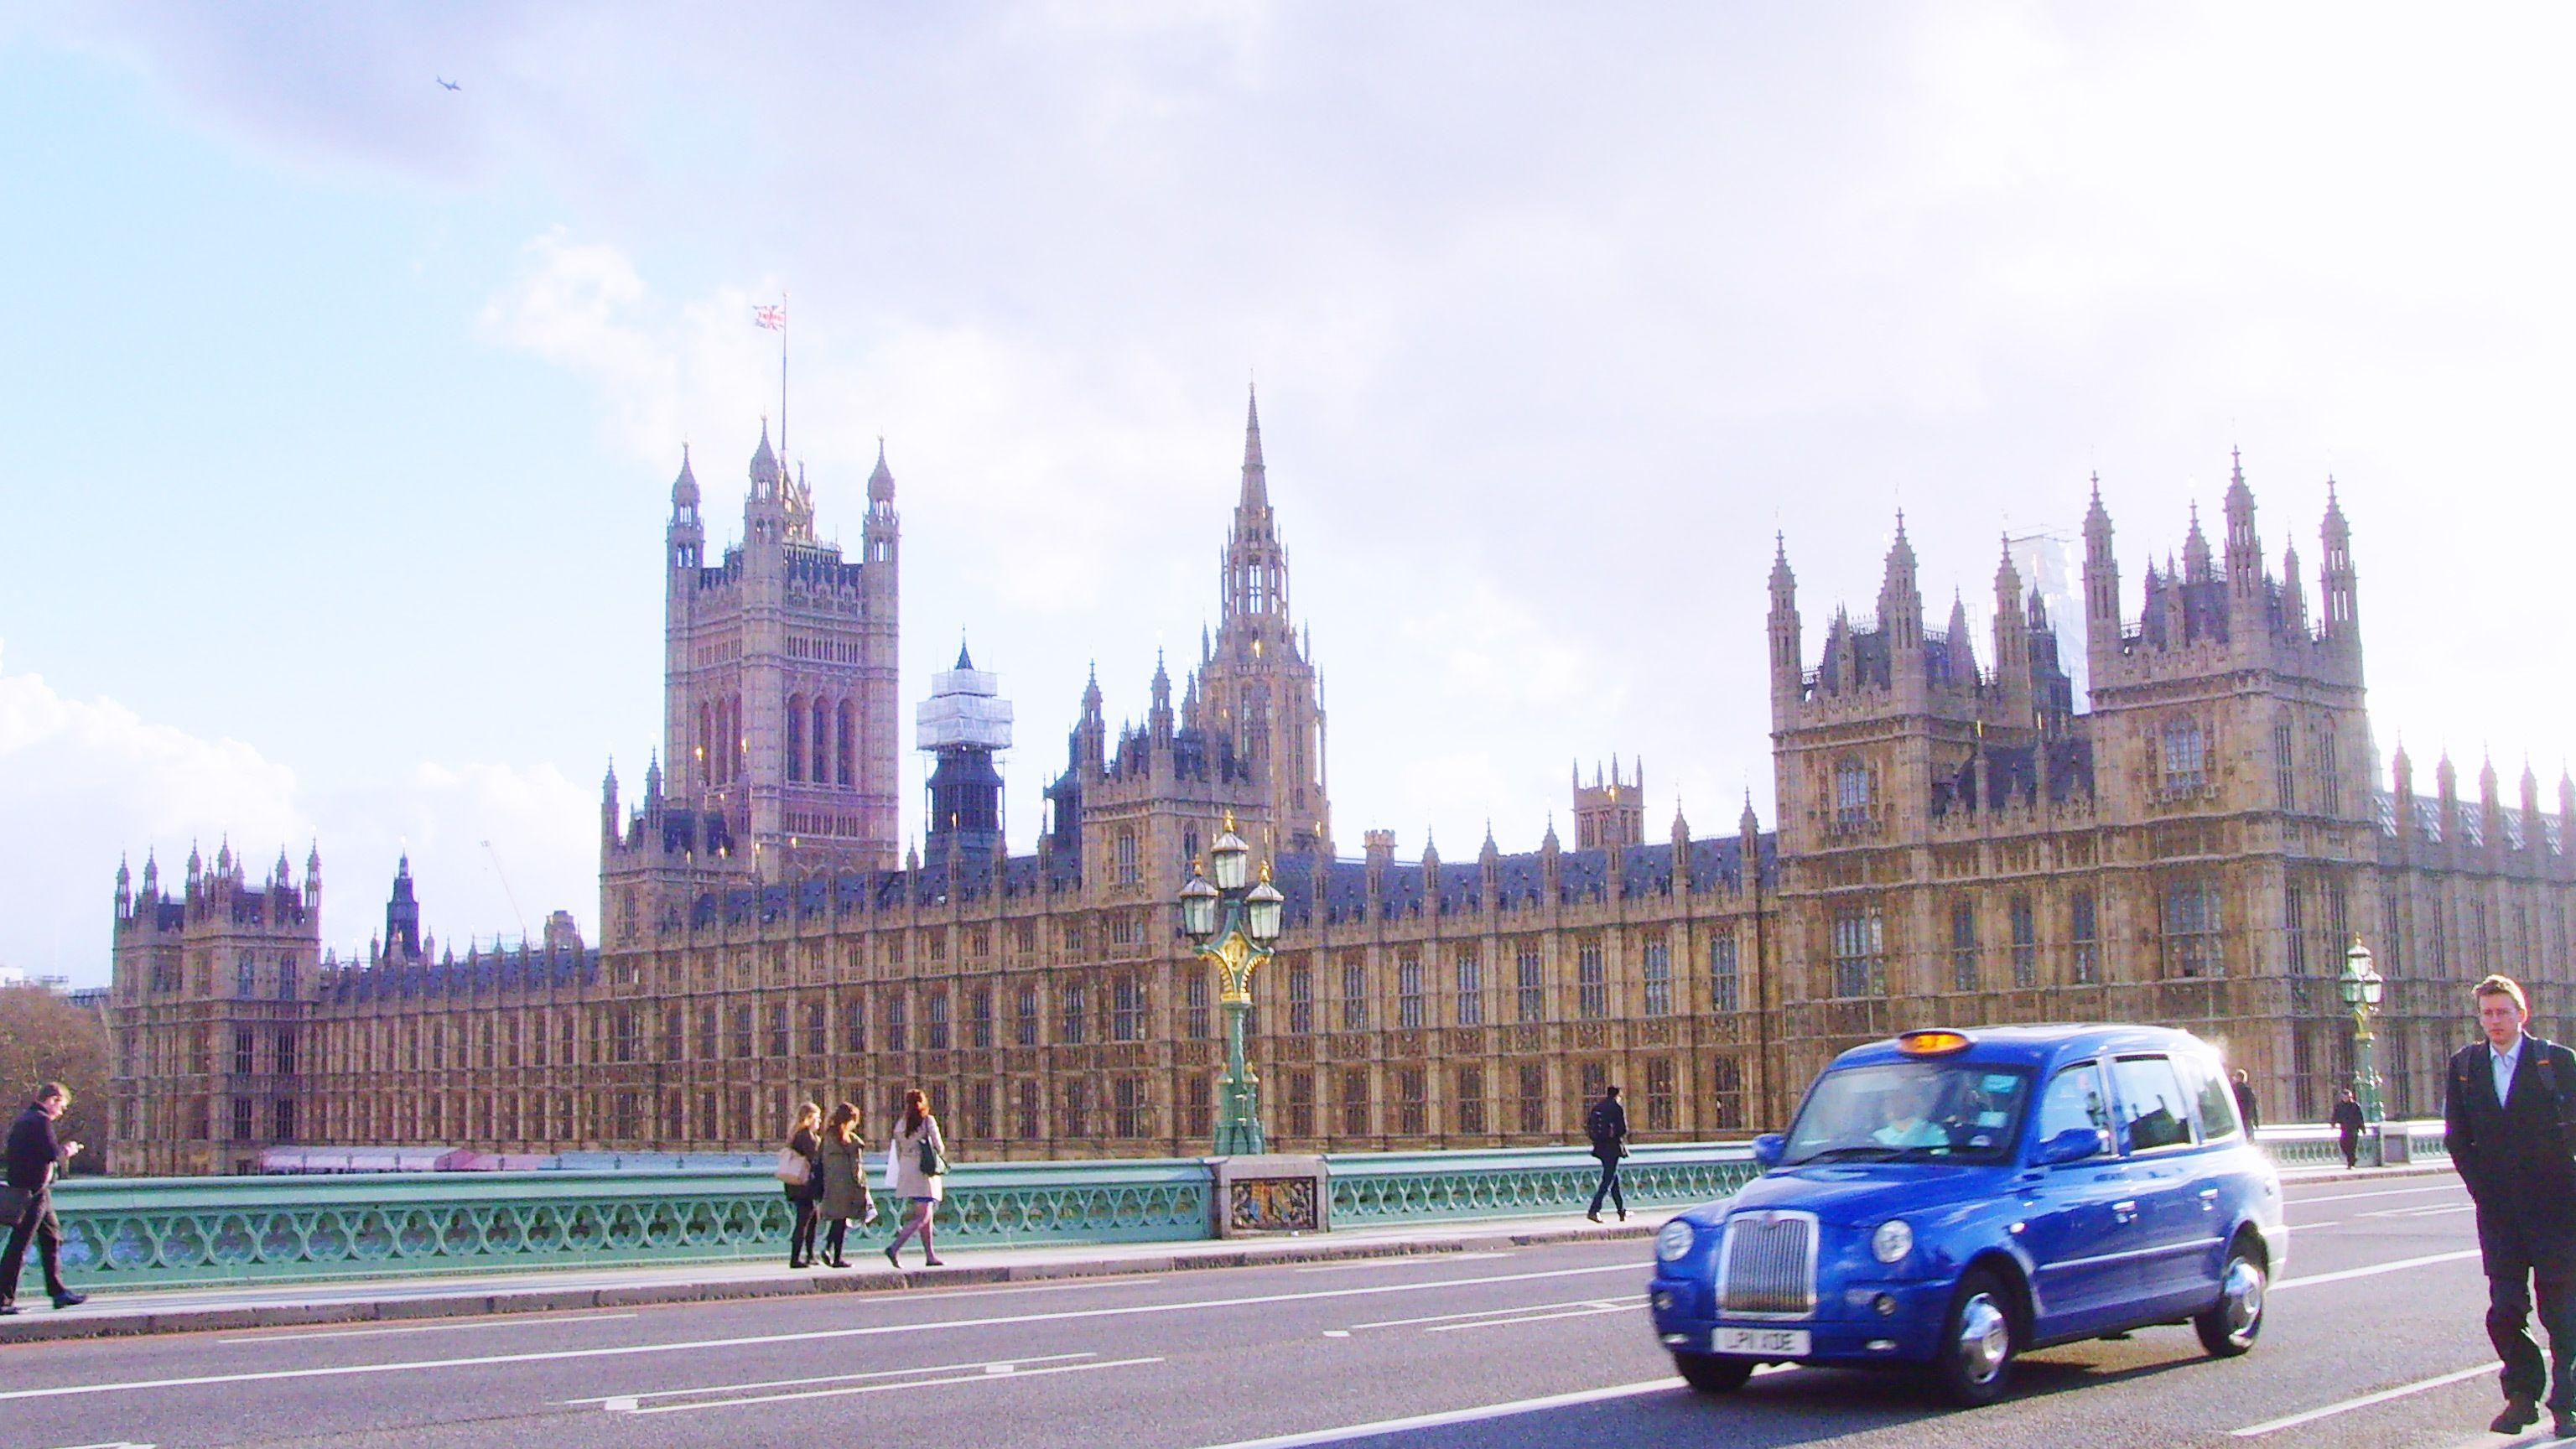 blue taxi by House of Parliament in London